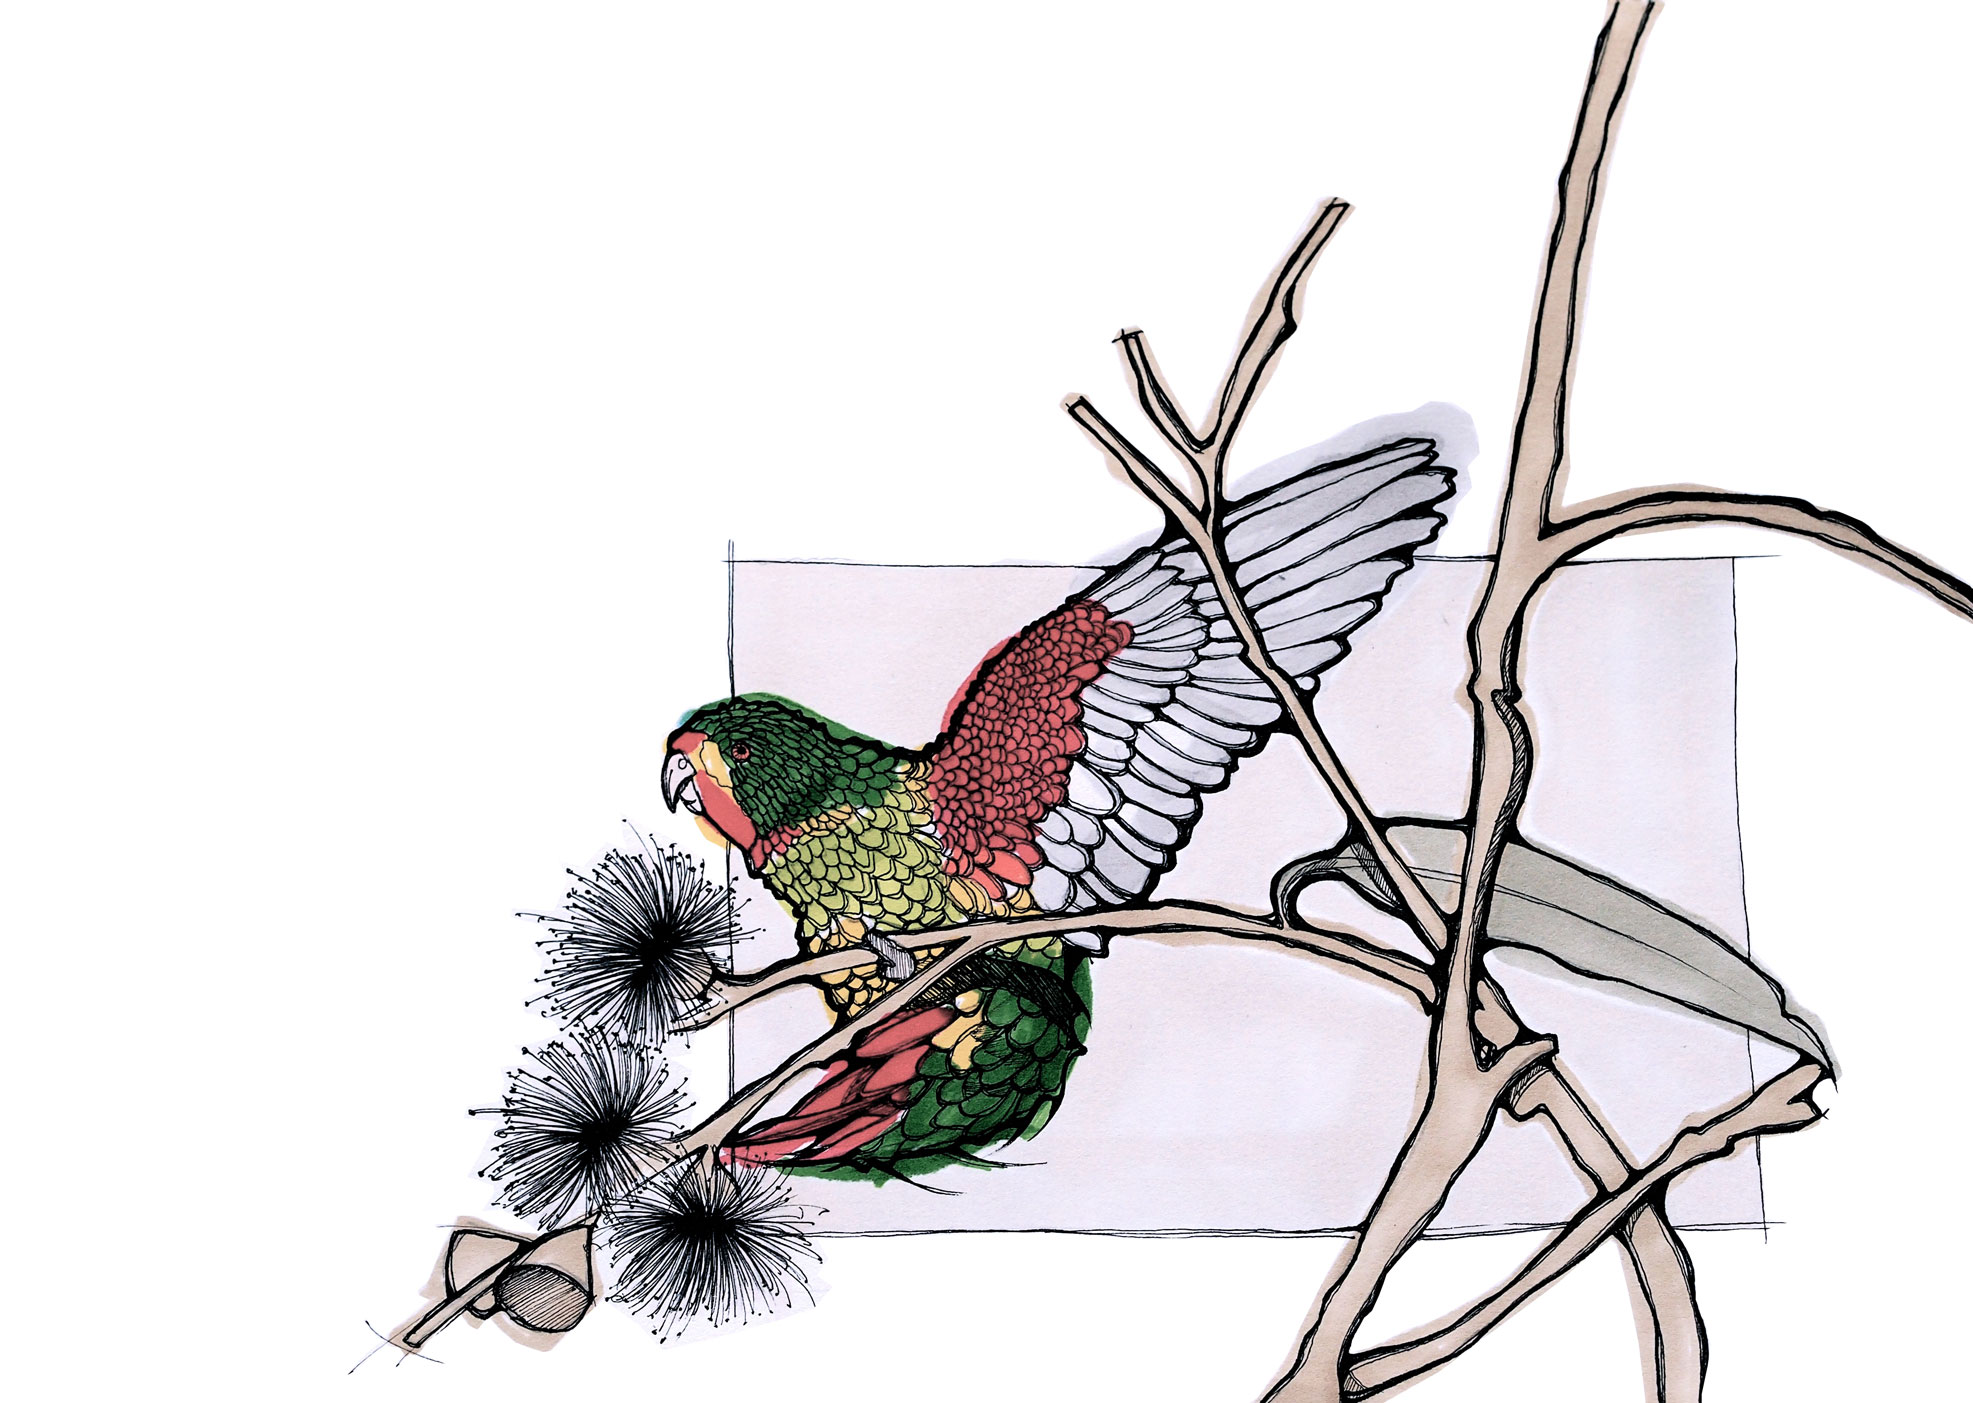 SWIFT PARROT DEJAN STOJANOVIC PANTONE SKETCH